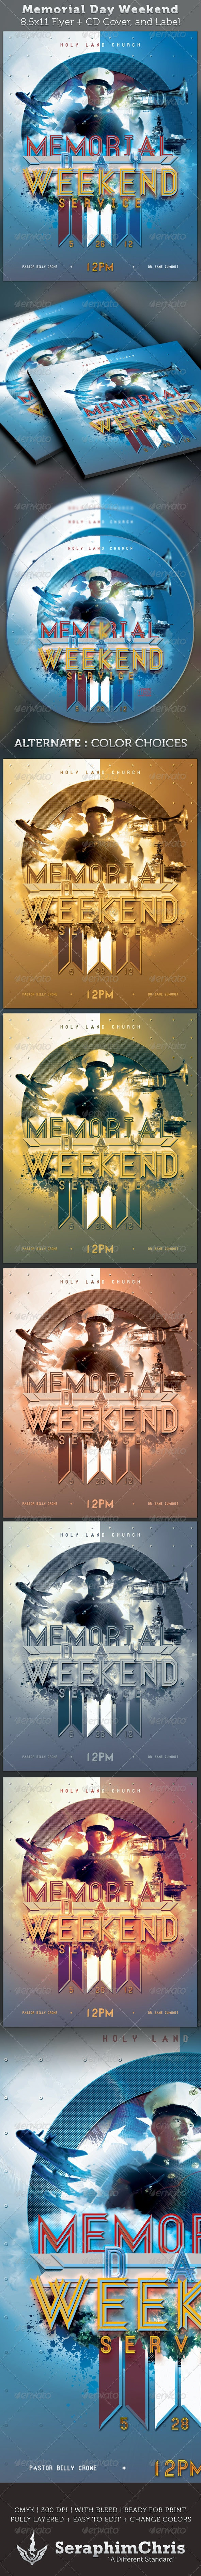 Memorial Day Weekend Full Page Flyer and CD Cover - Church Flyers